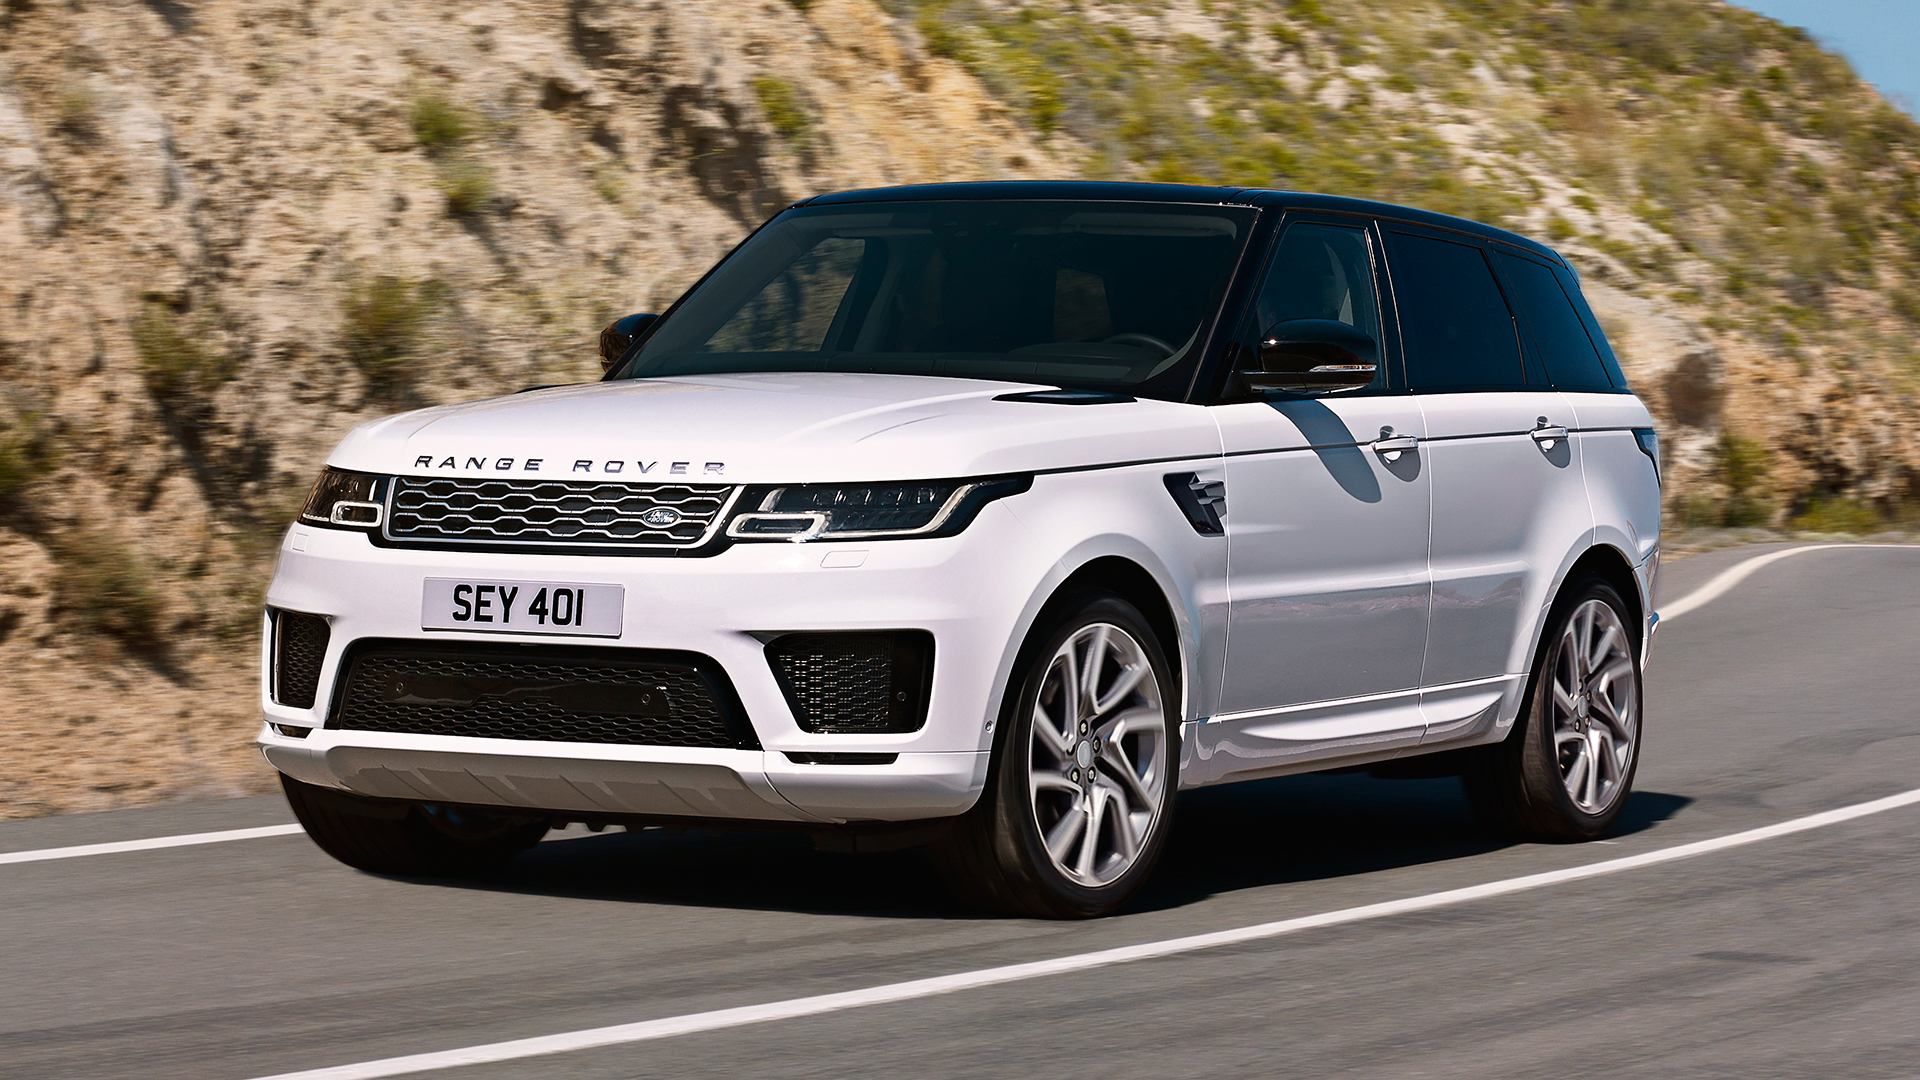 Range Rover Sport launches with plug-in hybrid option